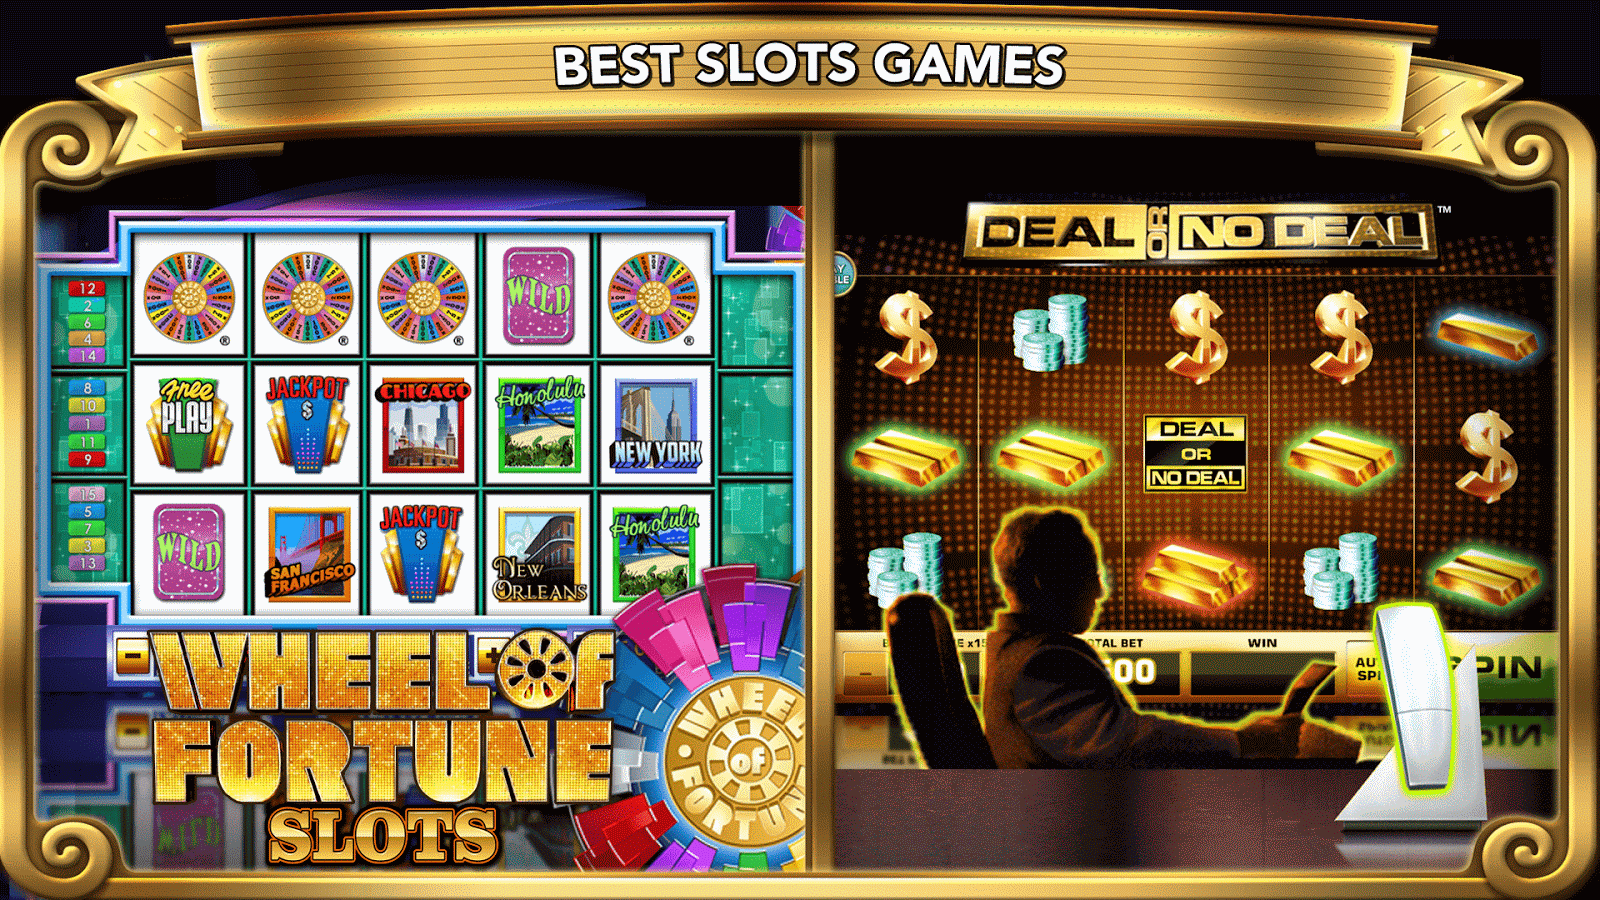 Realistic Games Casinos Online - 3+ Realistic Games Casino Slot Games FREE